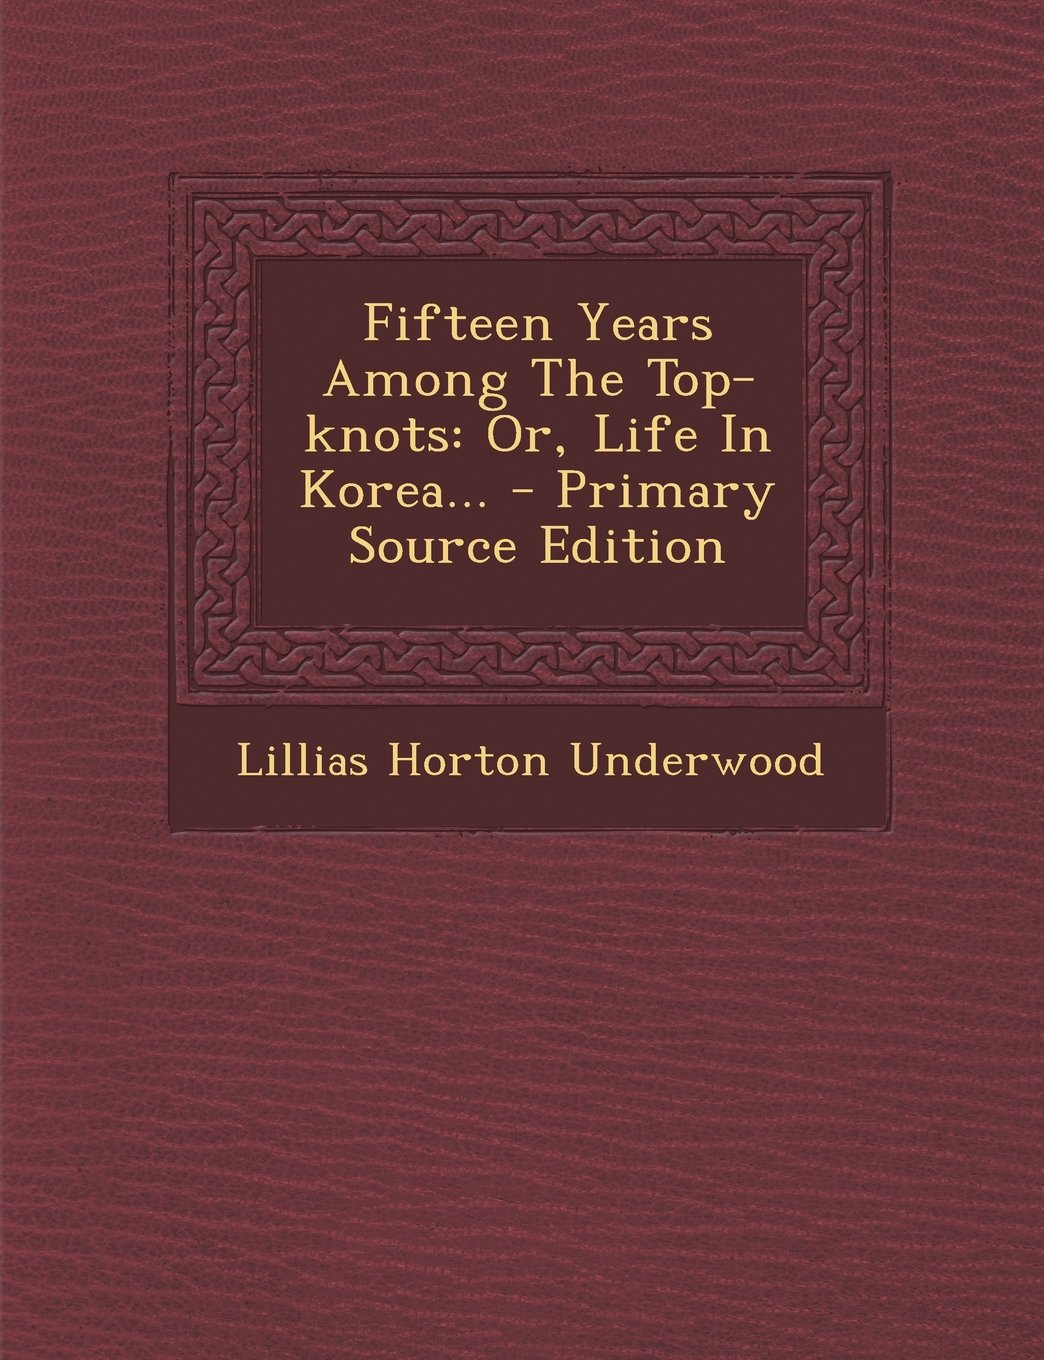 Download Fifteen Years Among the Top-Knots: Or, Life in Korea... - Primary Source Edition (Russian Edition) pdf epub